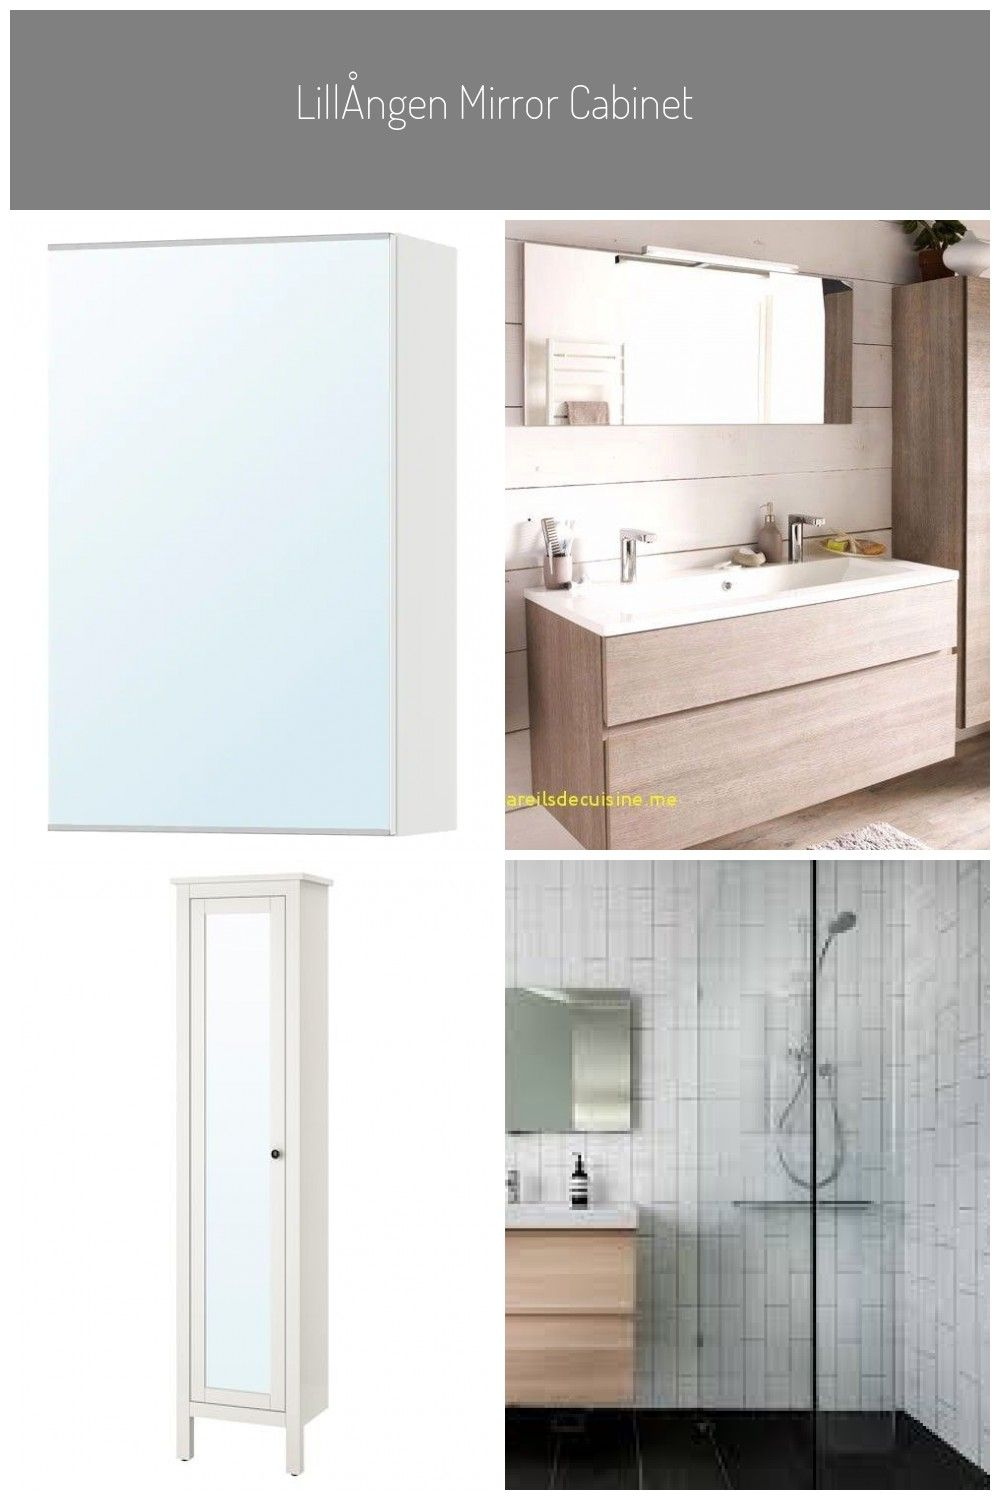 Lillangen Mirror Cabinet With 1 Door White Ikea Badezimmer Spiegelschrank Ikea Lillangen Mirror Cabinet With In 2020 Mirror Cabinets Mirror White Vanity Bathroom